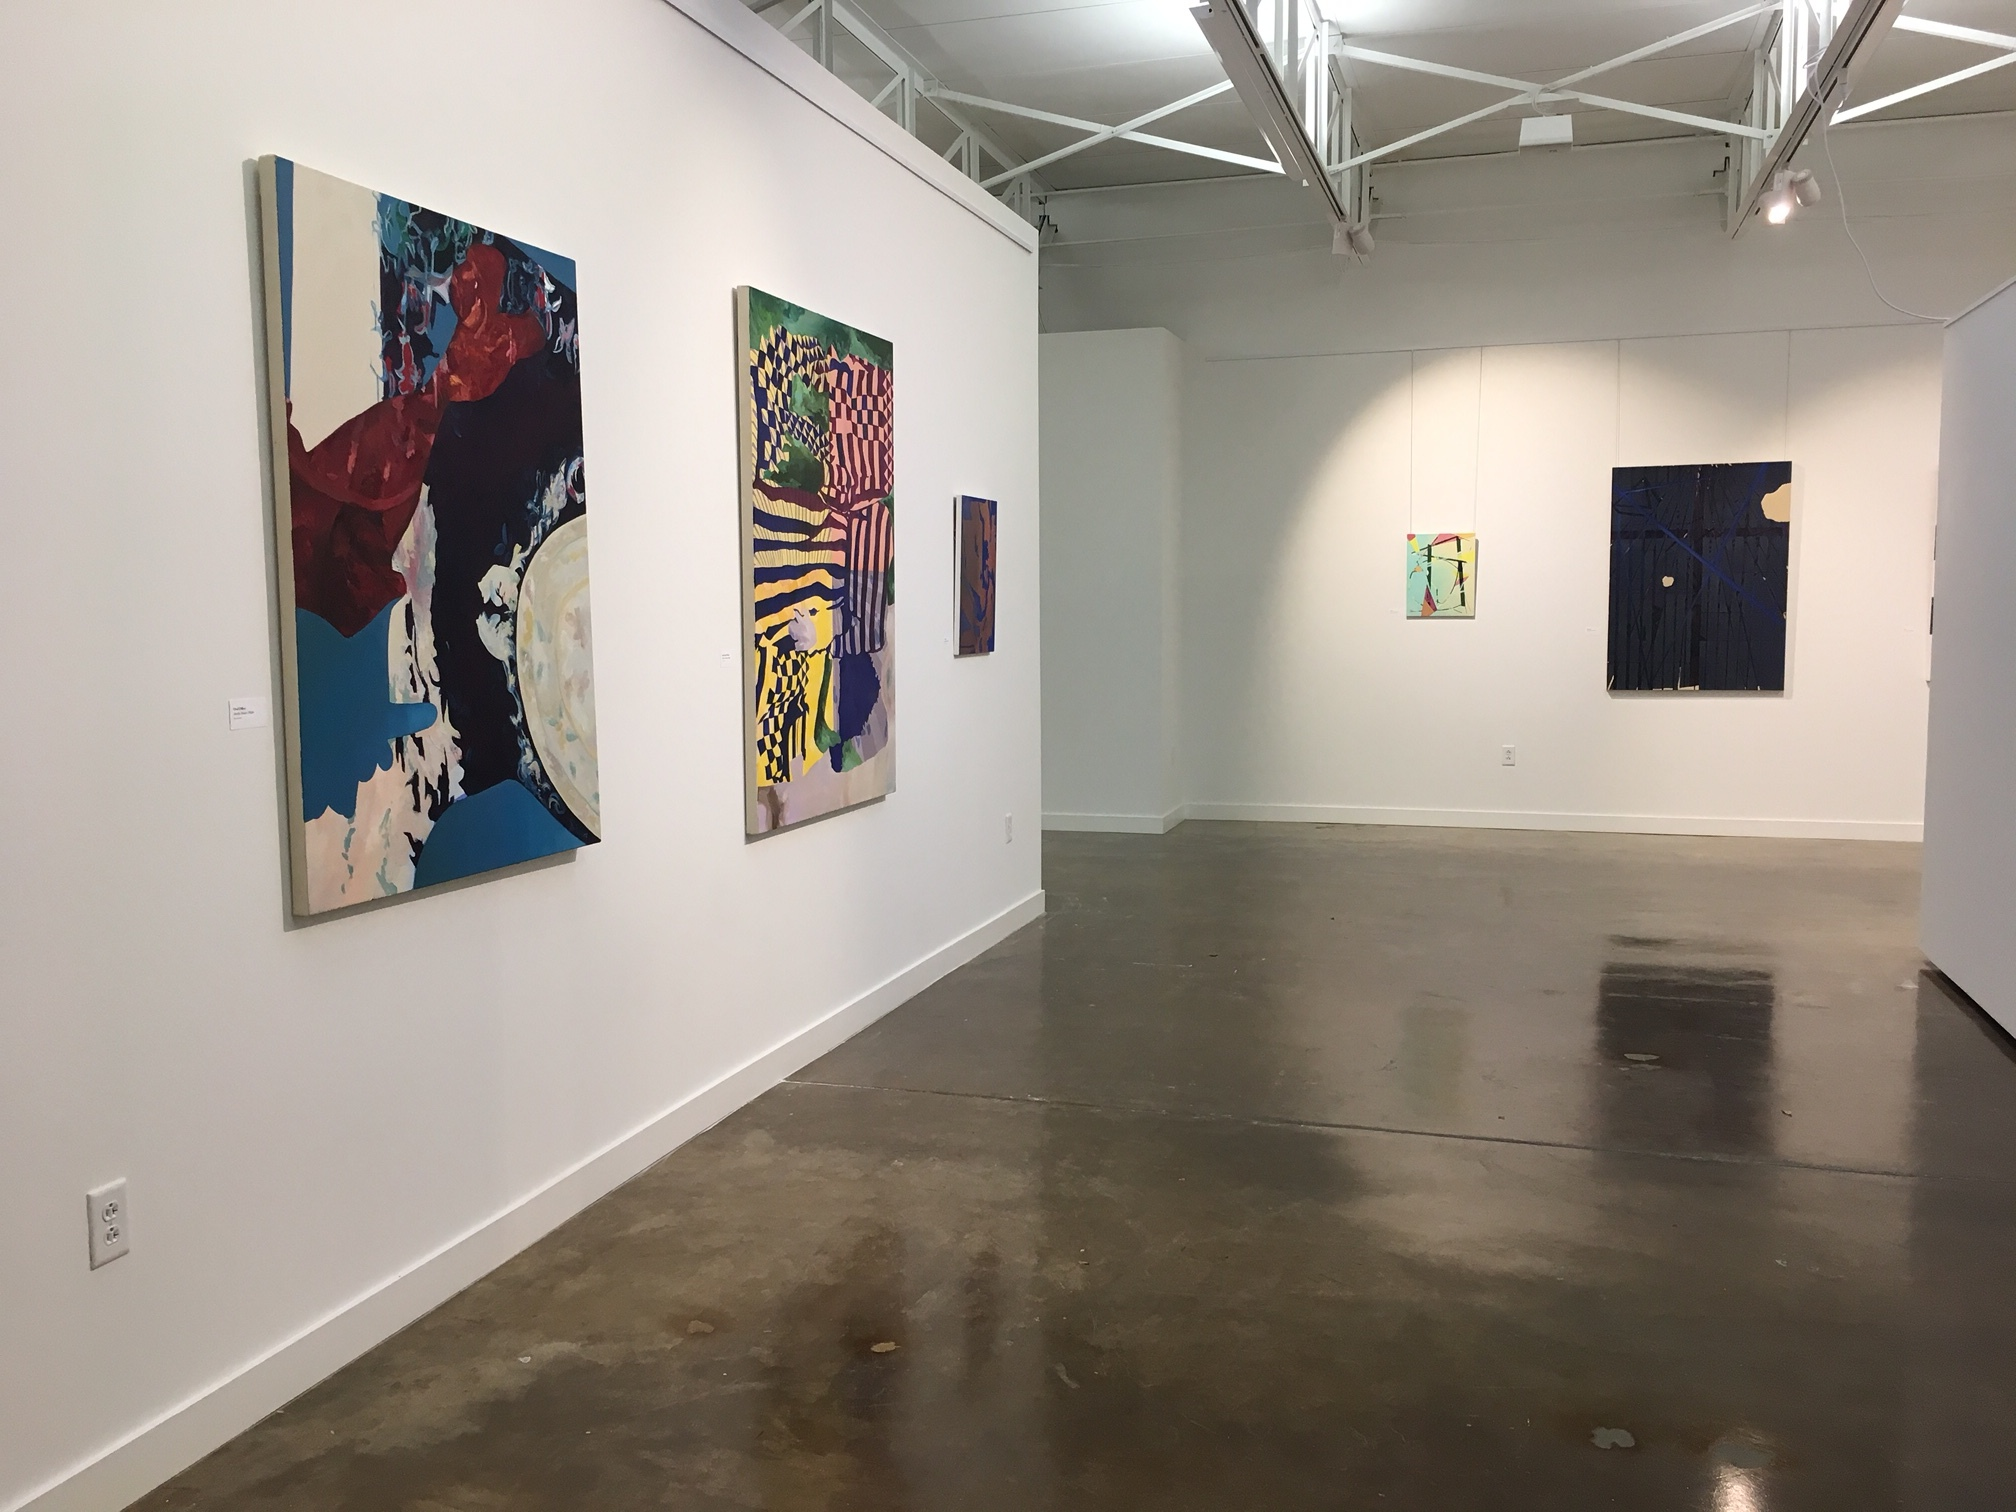 Installation view at Sherle Wagner Art Gallery, Dallas, TX, 12/2016-2/2017